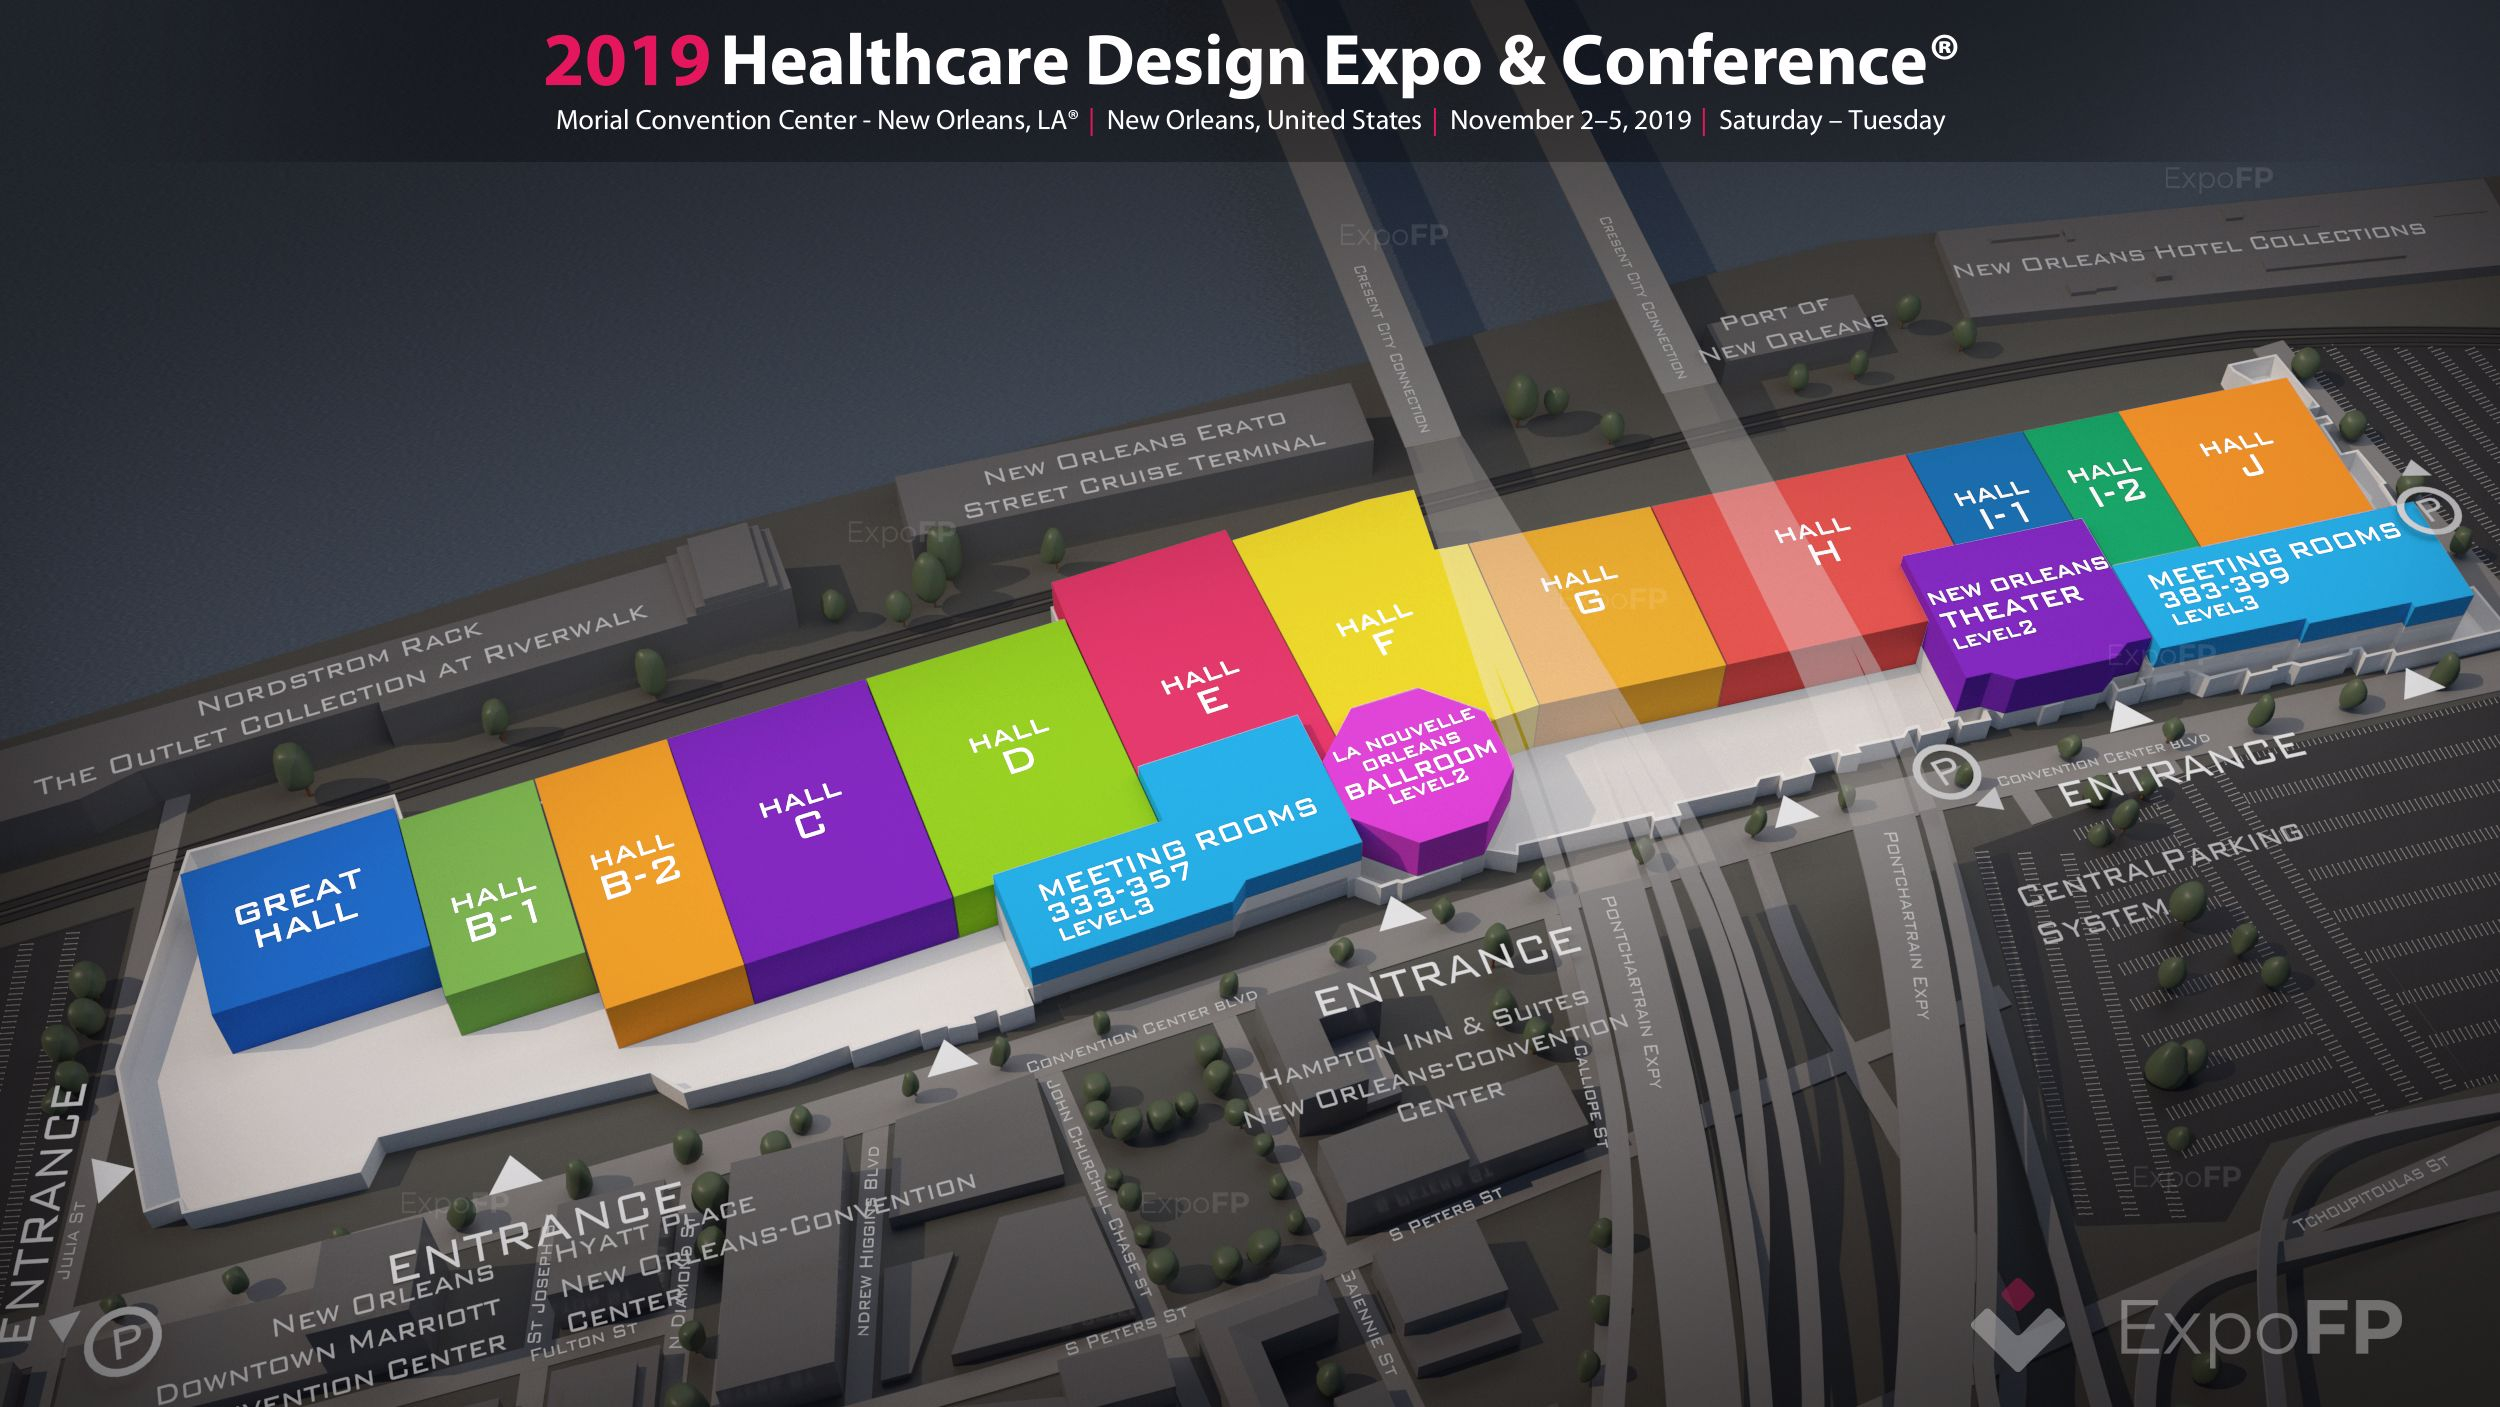 Healthcare Design Expo & Conference 2019 in Morial Convention Center